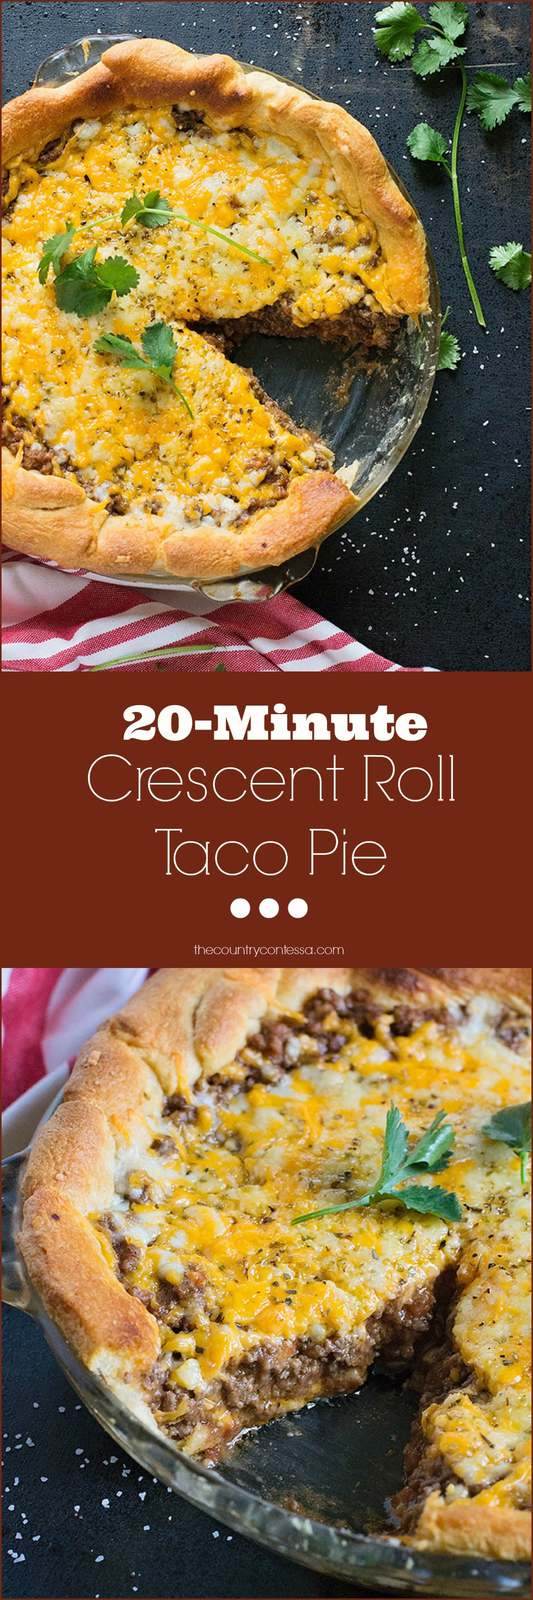 20 minute taco pie is your easy shortcut to a busy weeknight meal. Crescent rolls mean no fussing with a pie crust. Add a simple salad and dinner is ready to go.